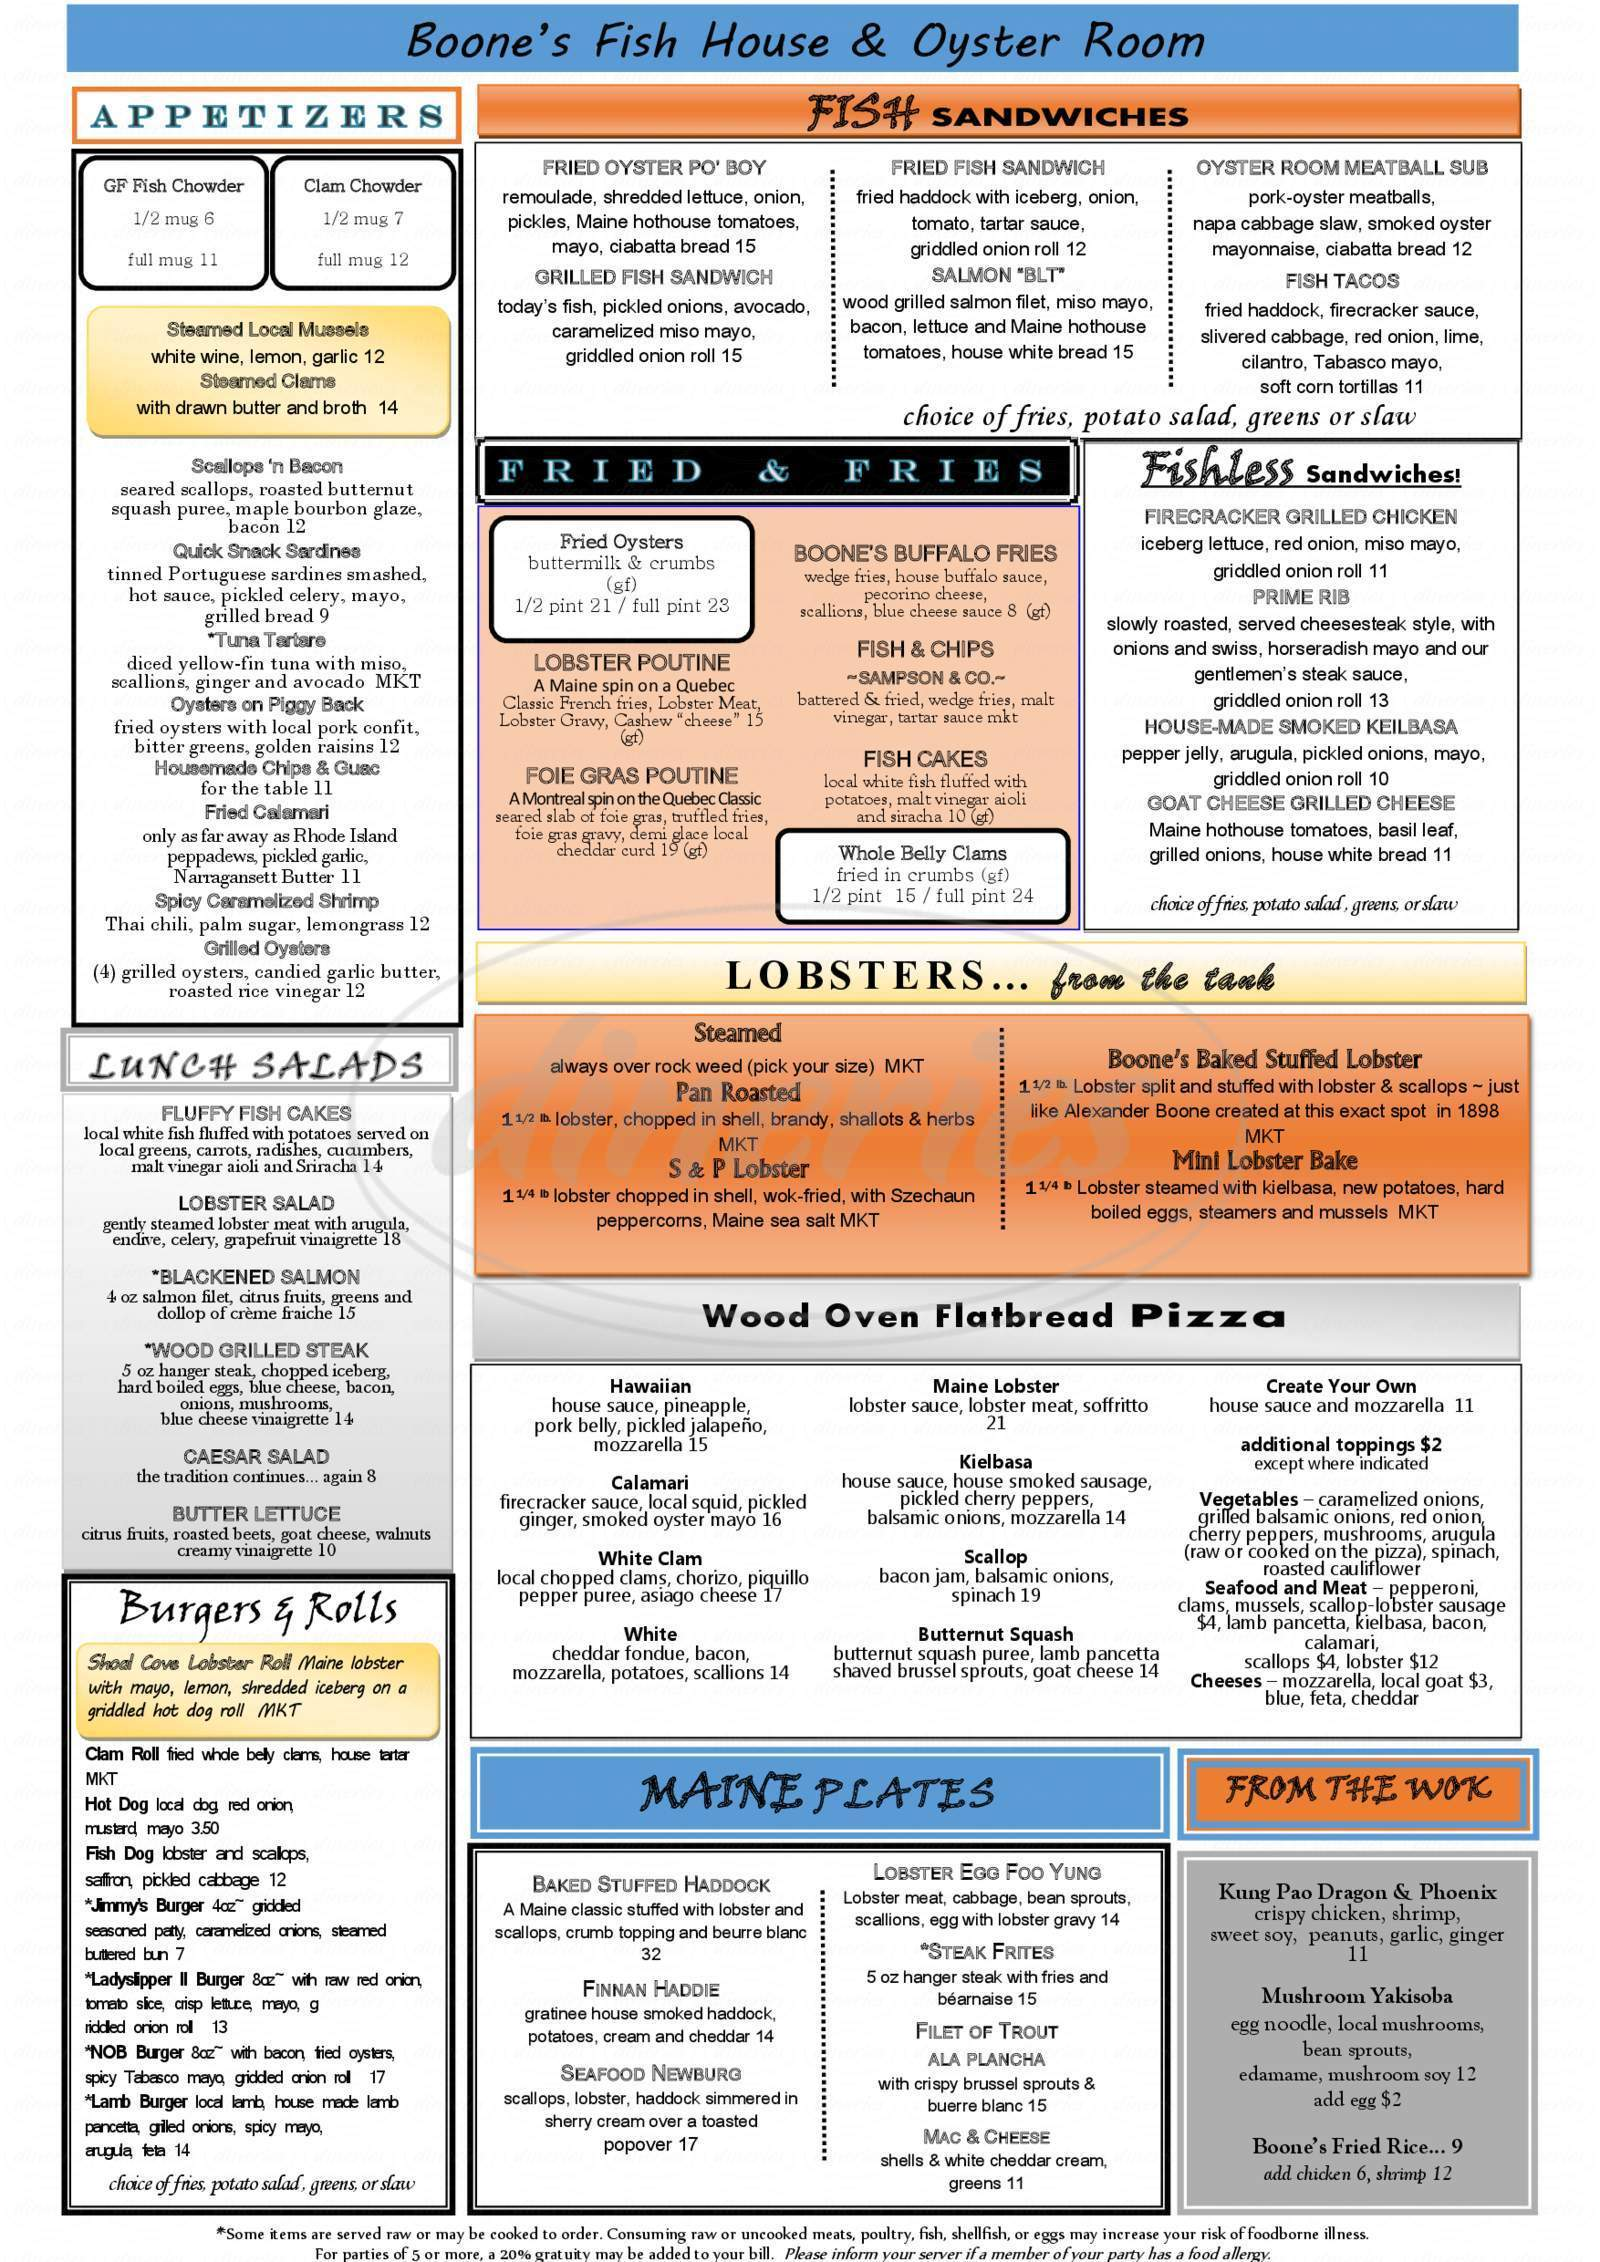 menu for Boone's Fish House & Oyster Room